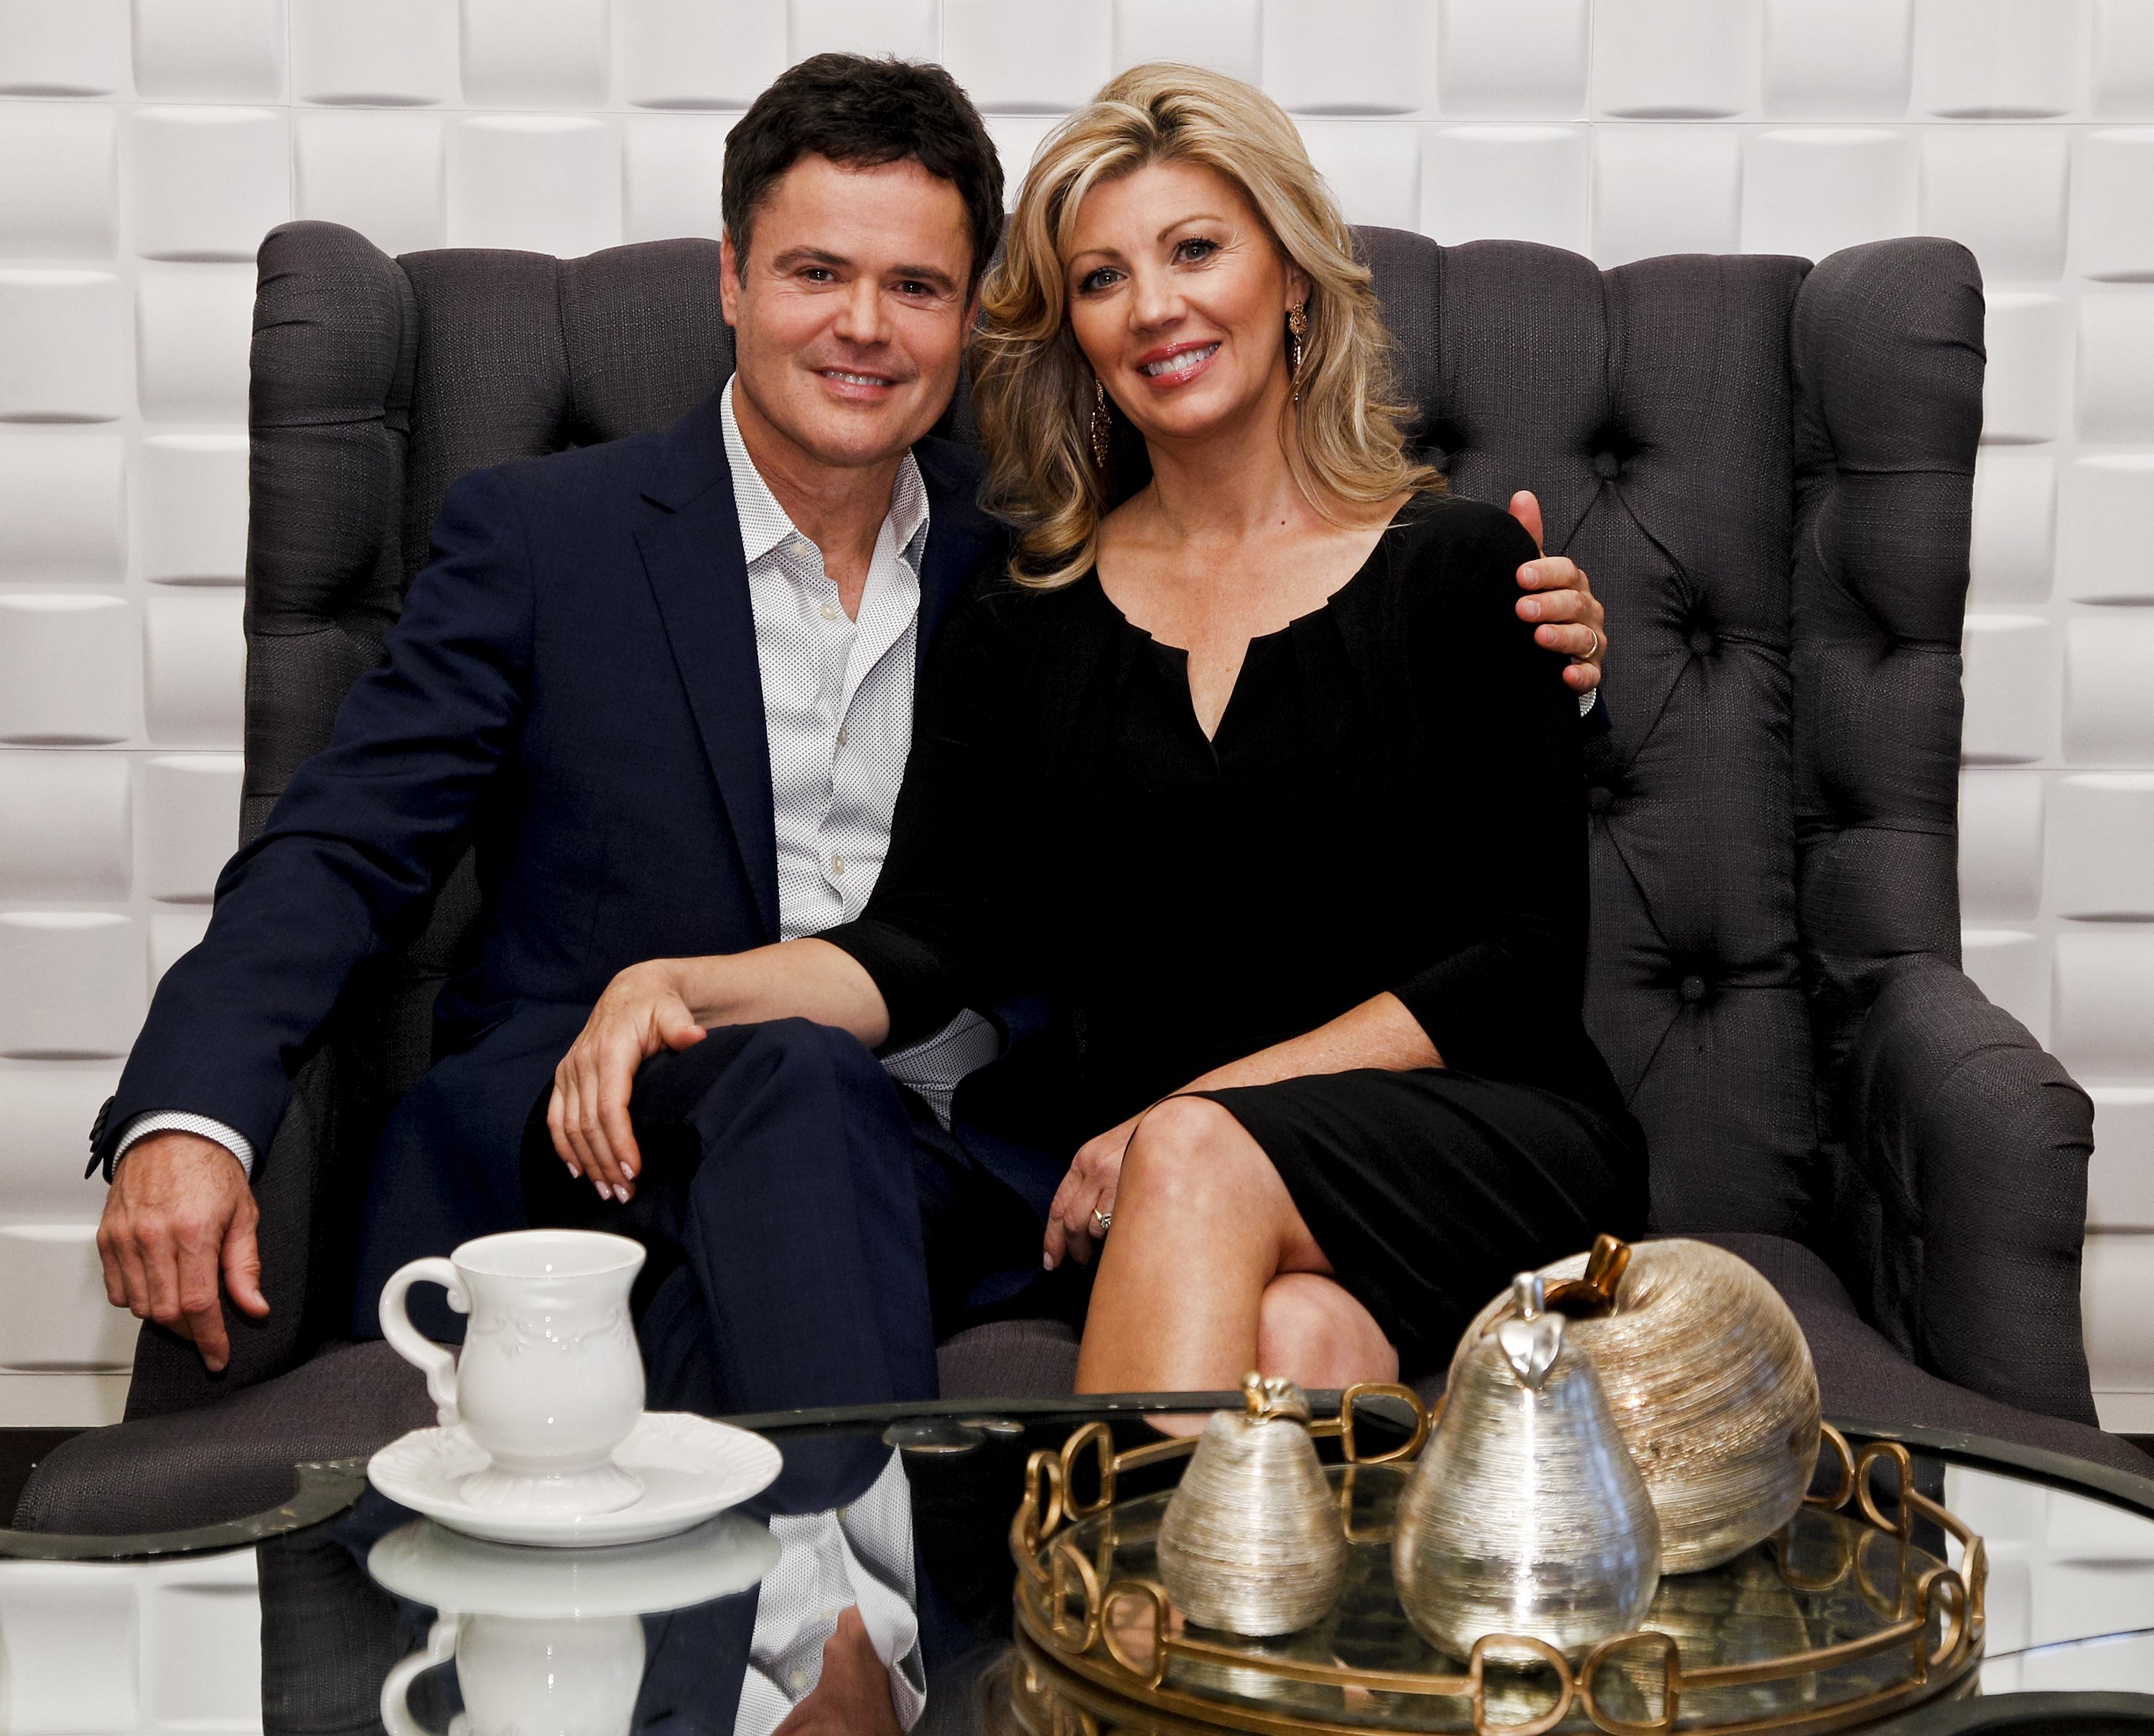 Image Credits: Getty Images / Brian Ach / WireImage | Entertainer Donny Osmond and Debbie Osmond attend the launch of Donny Osmond Home on September 23, 2013 in New York City.